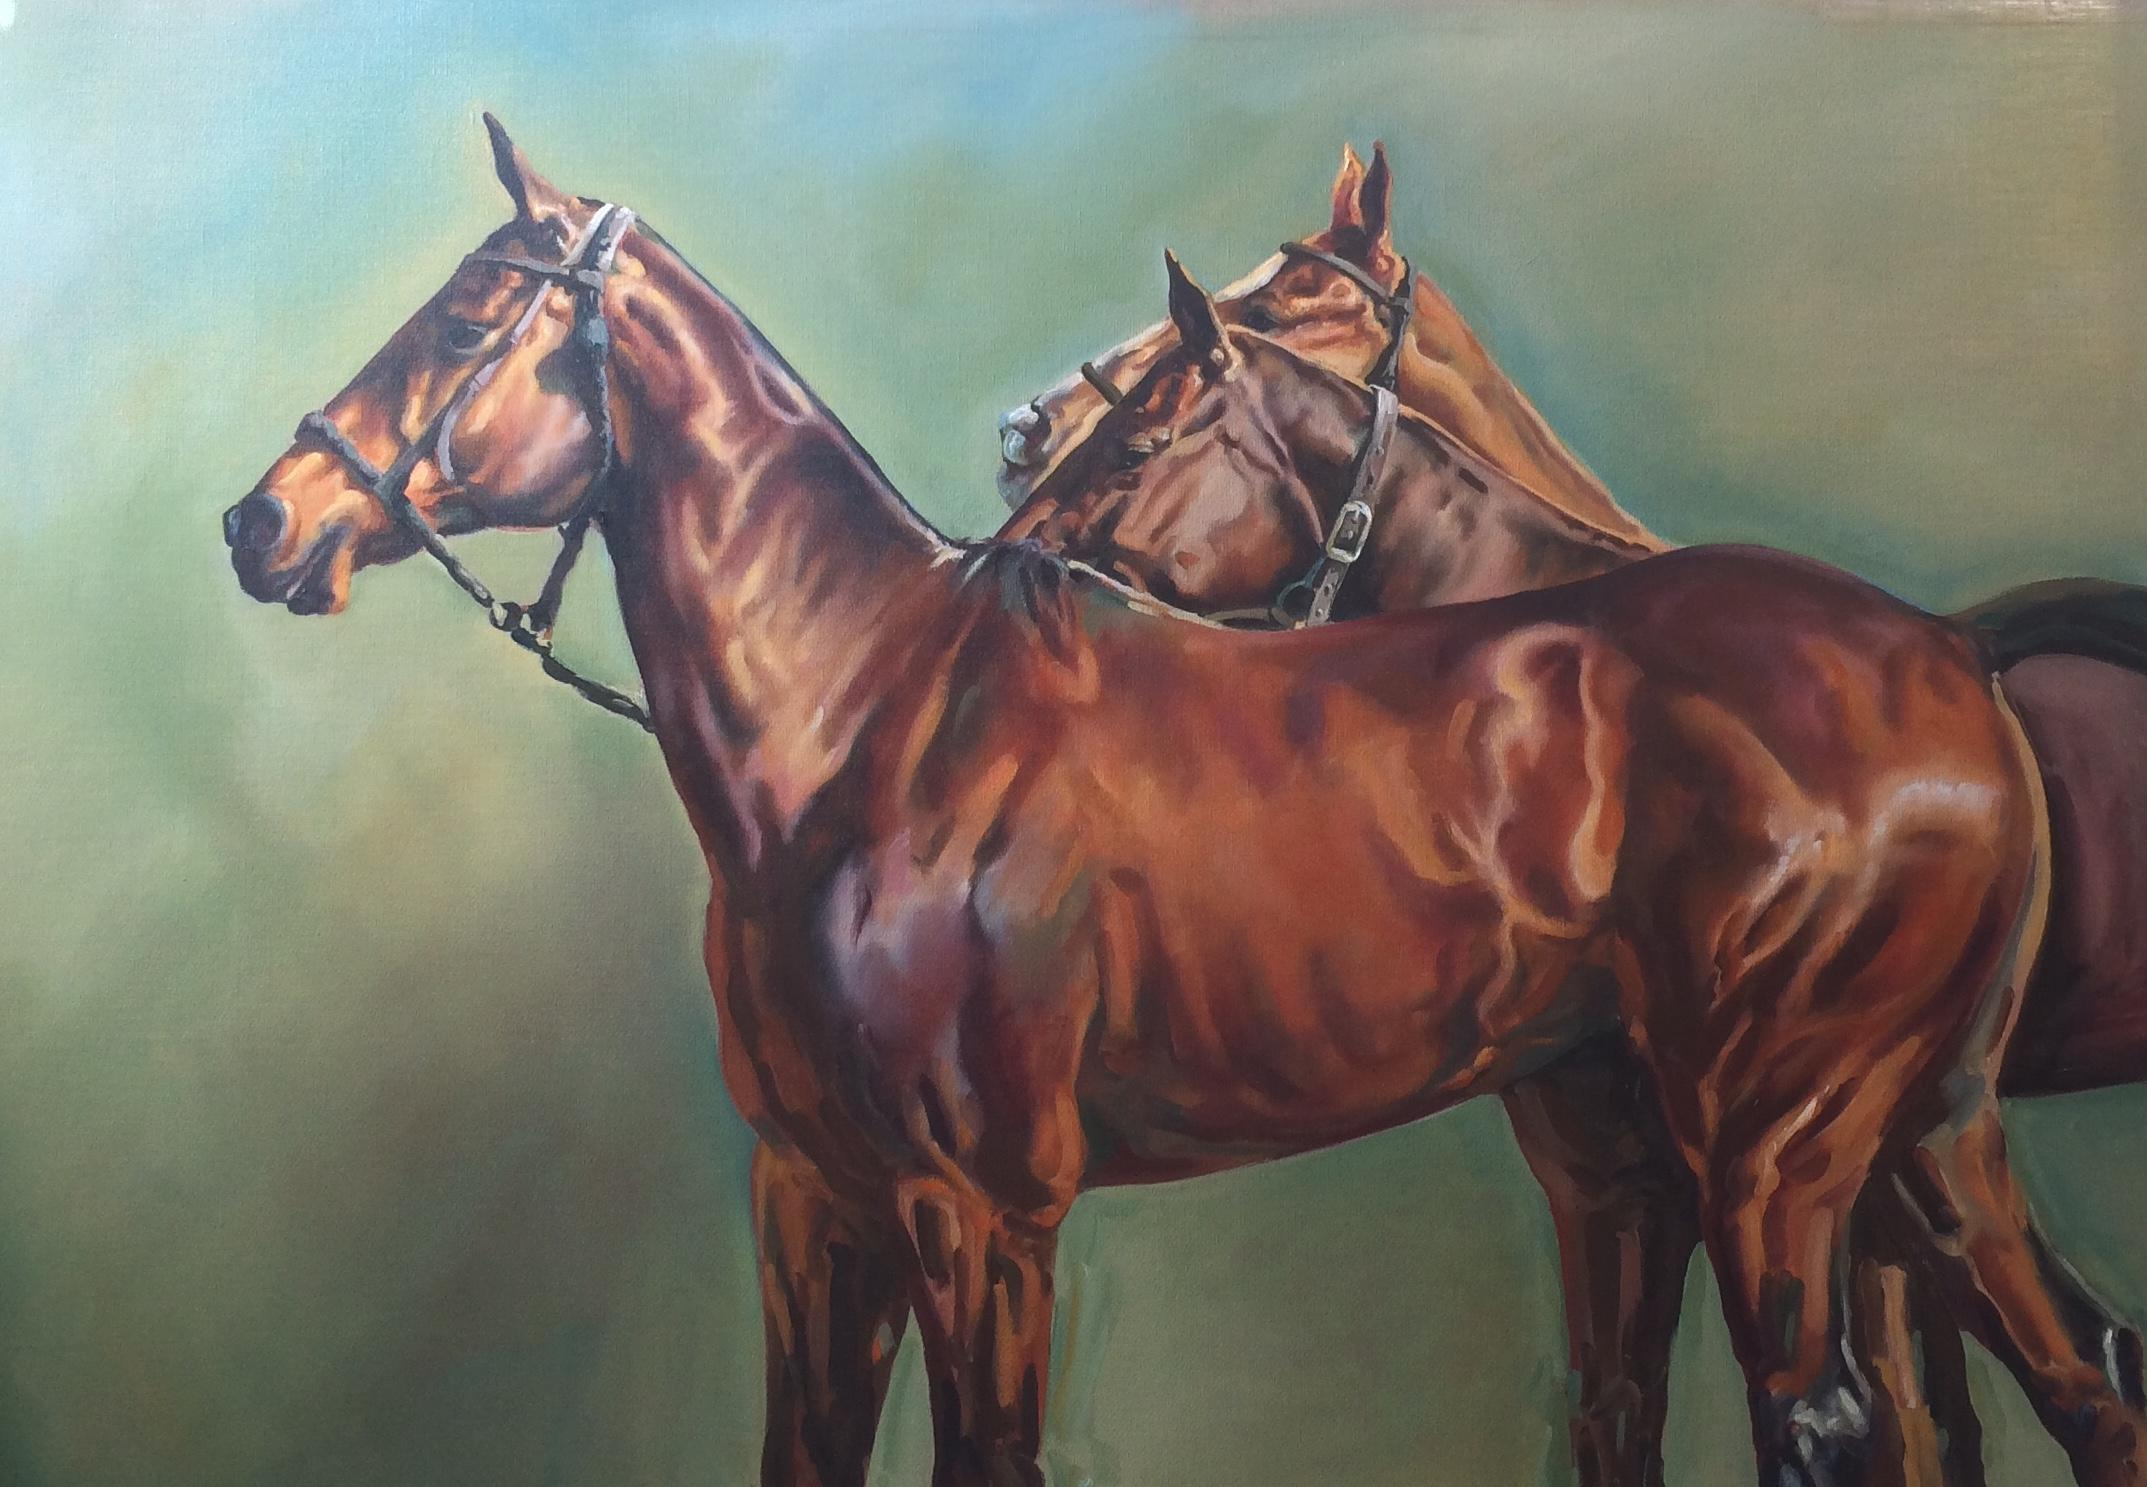 The Athletes Original, Oil on Canvas, Signed on bottom right, polo ponies